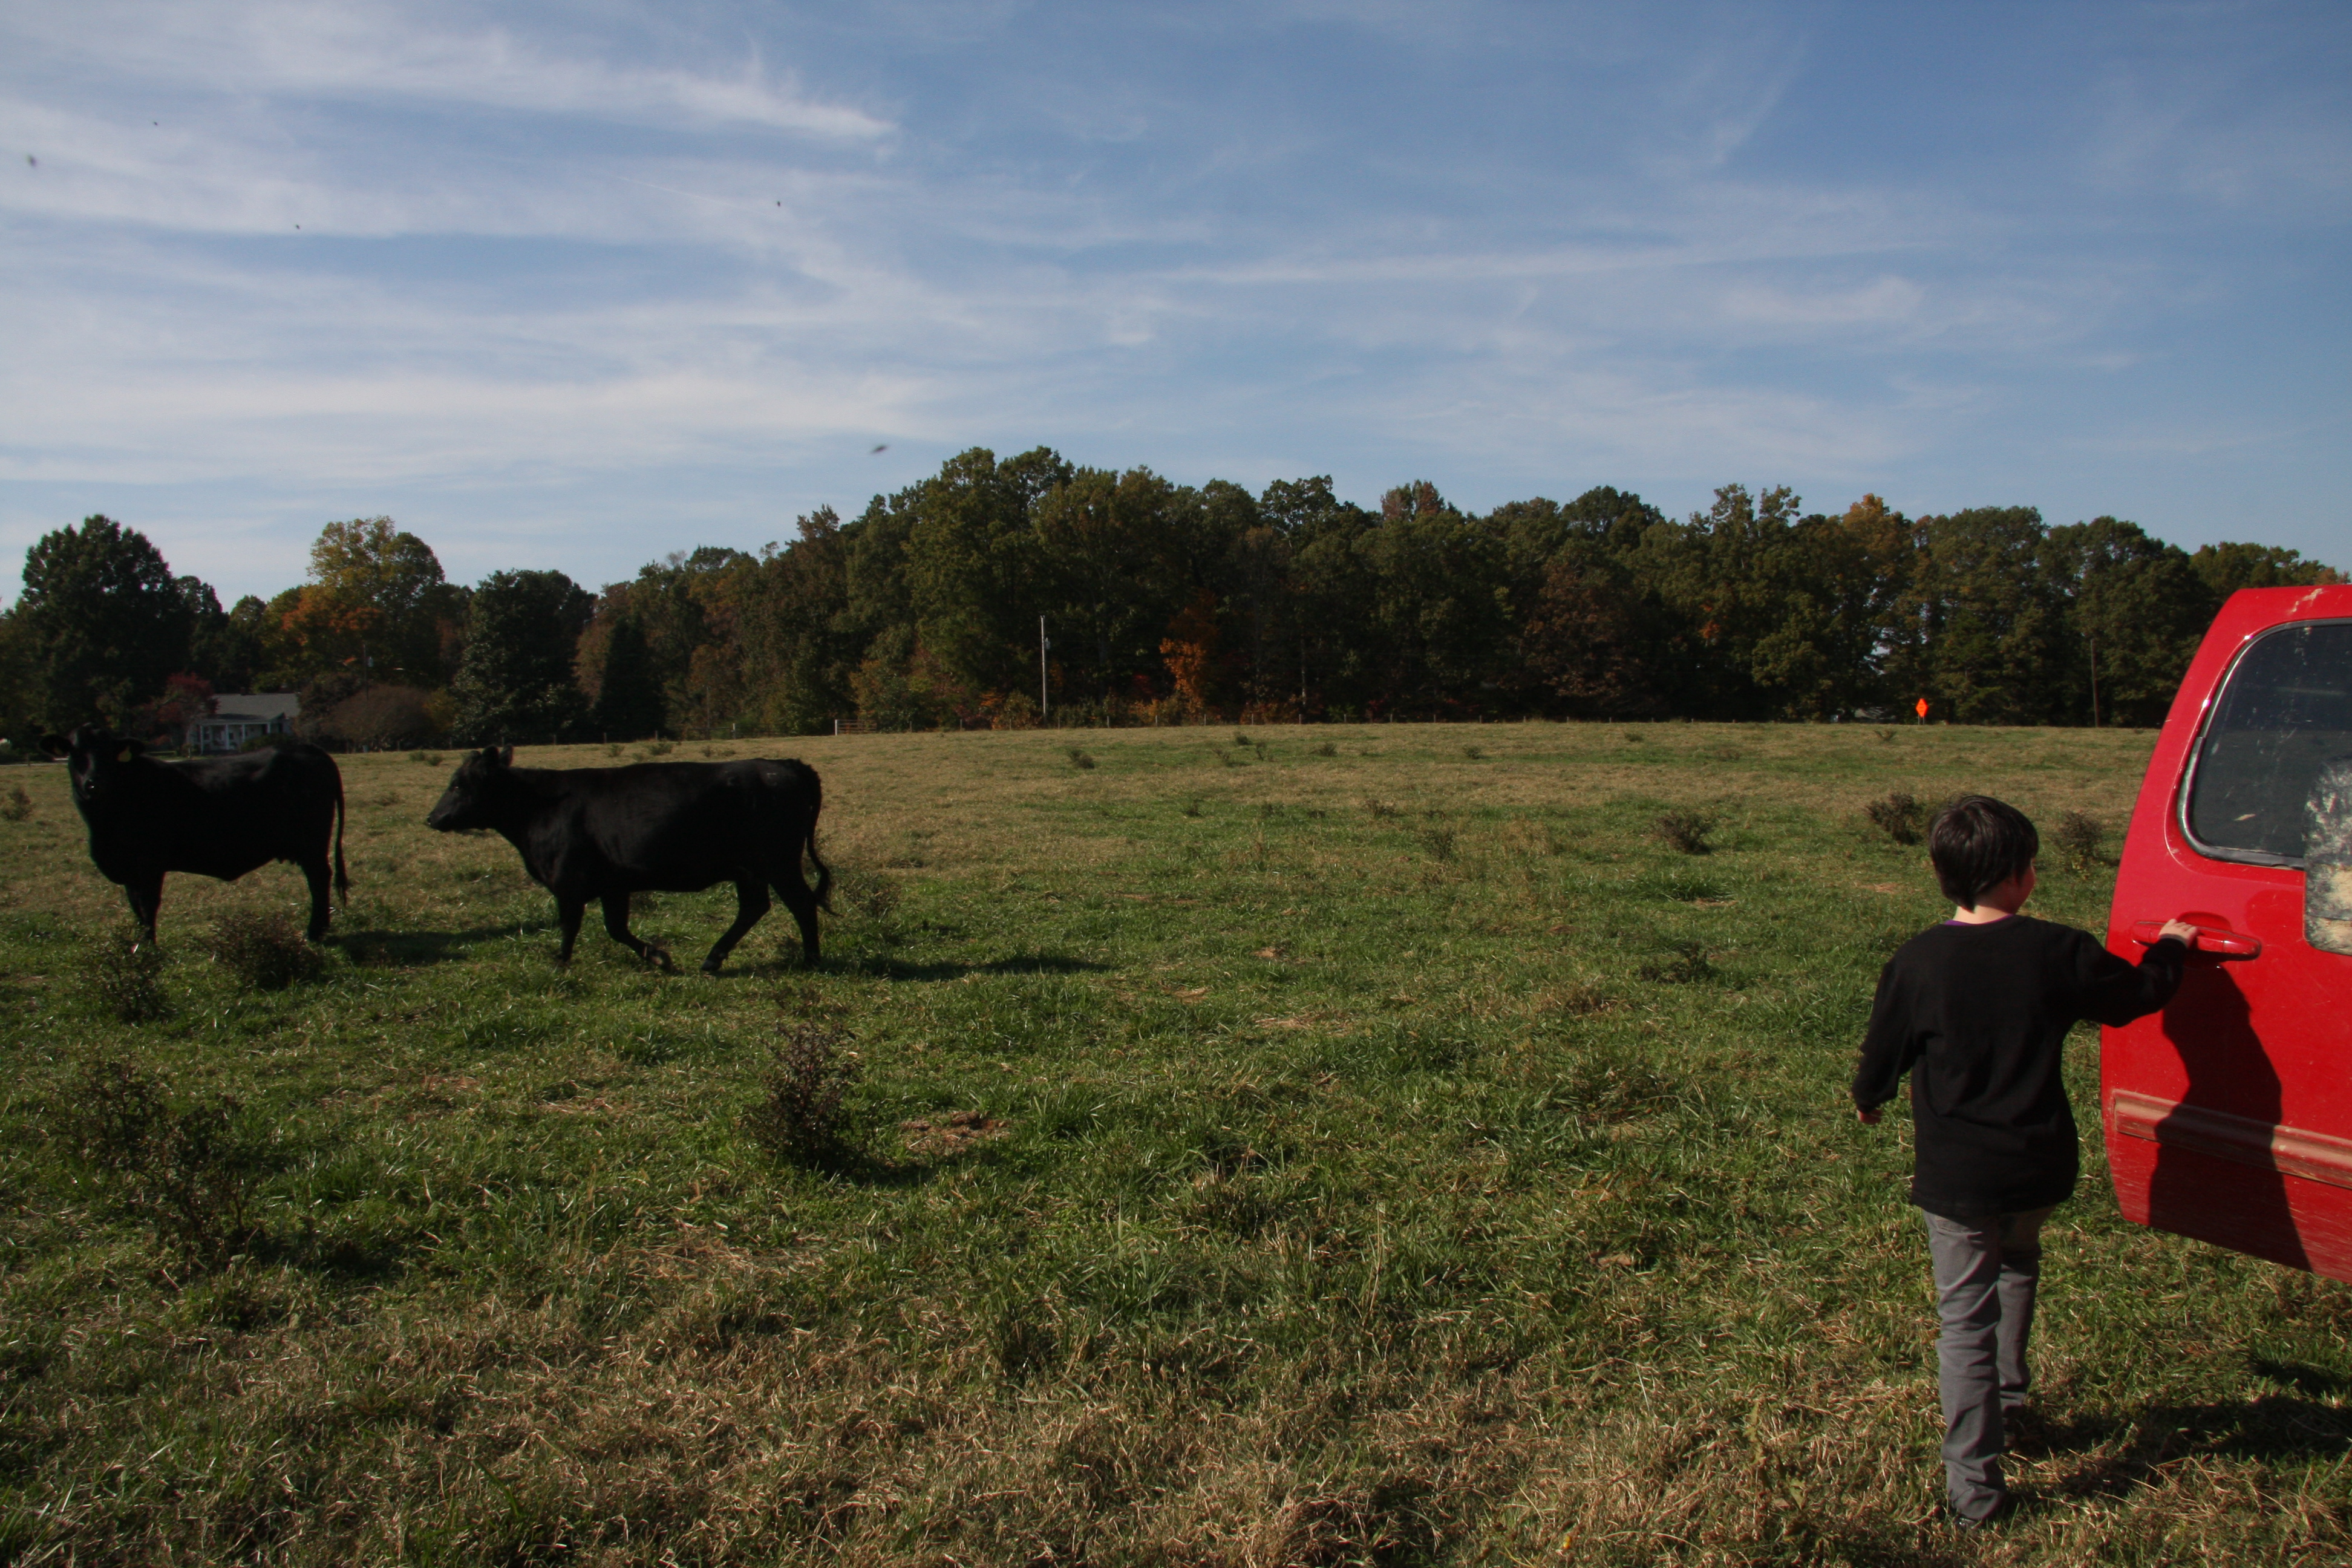 the size of cows up close was surprising to Jake